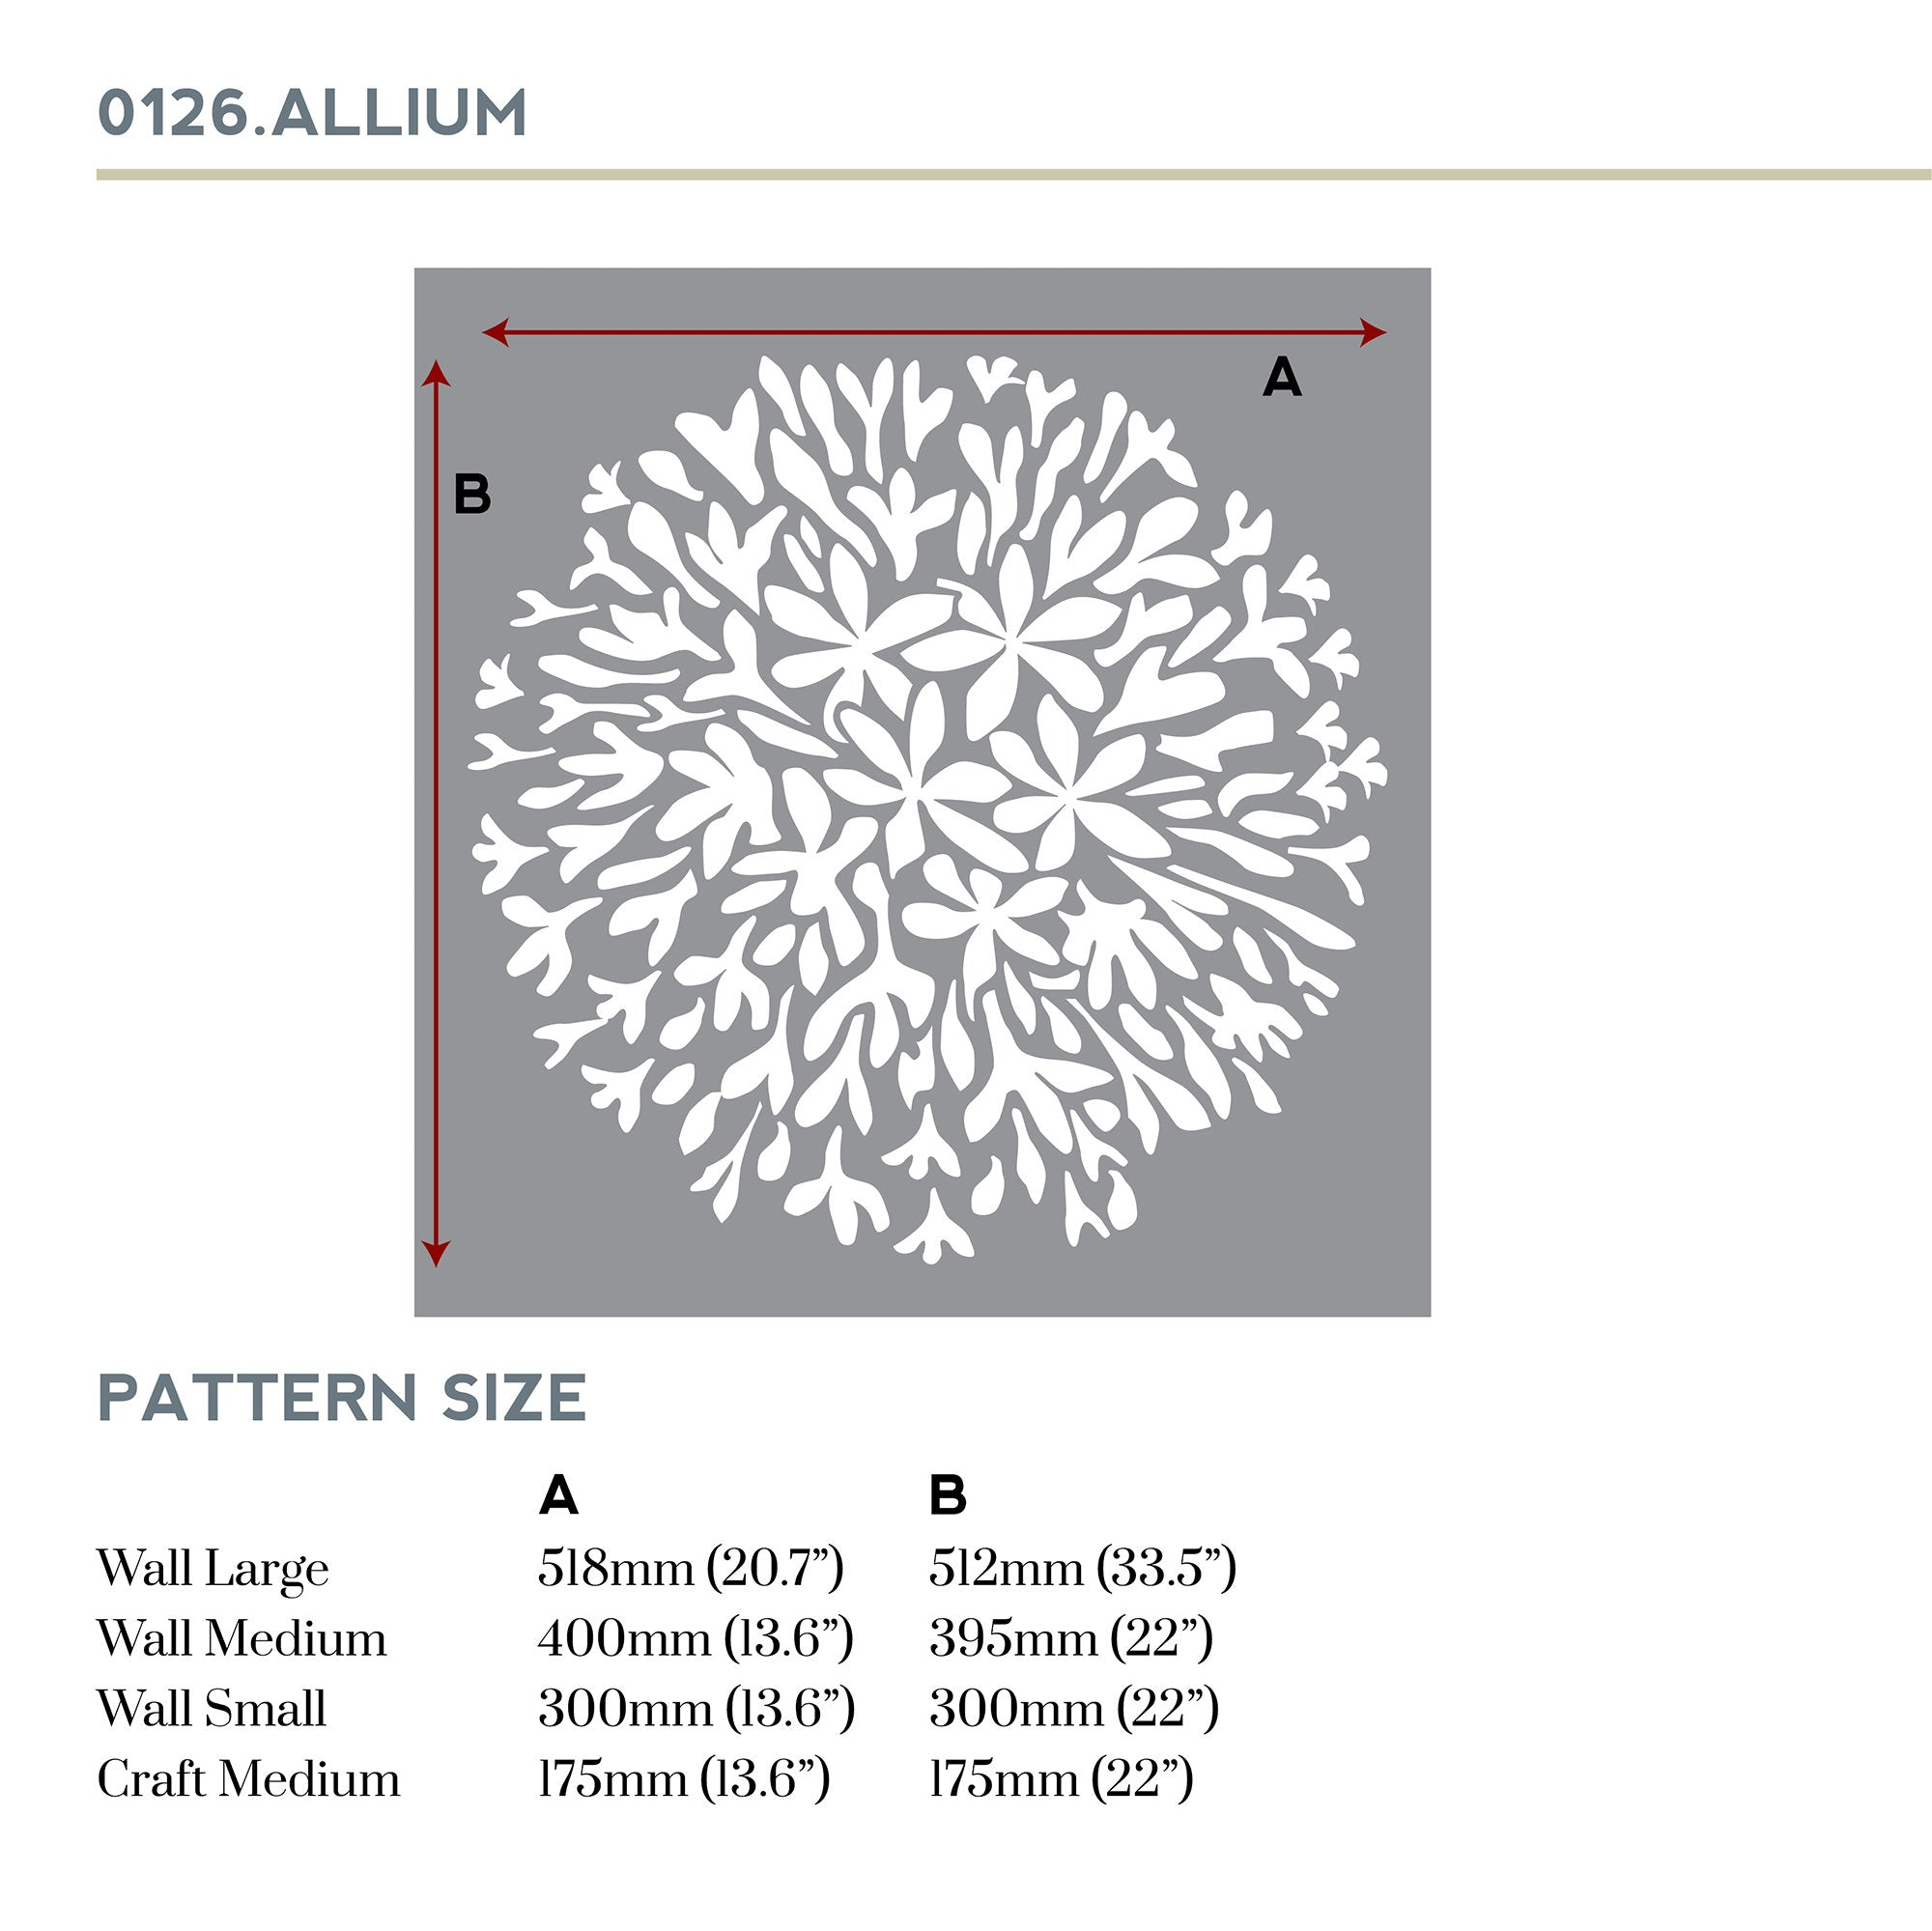 Allium stencil measurements